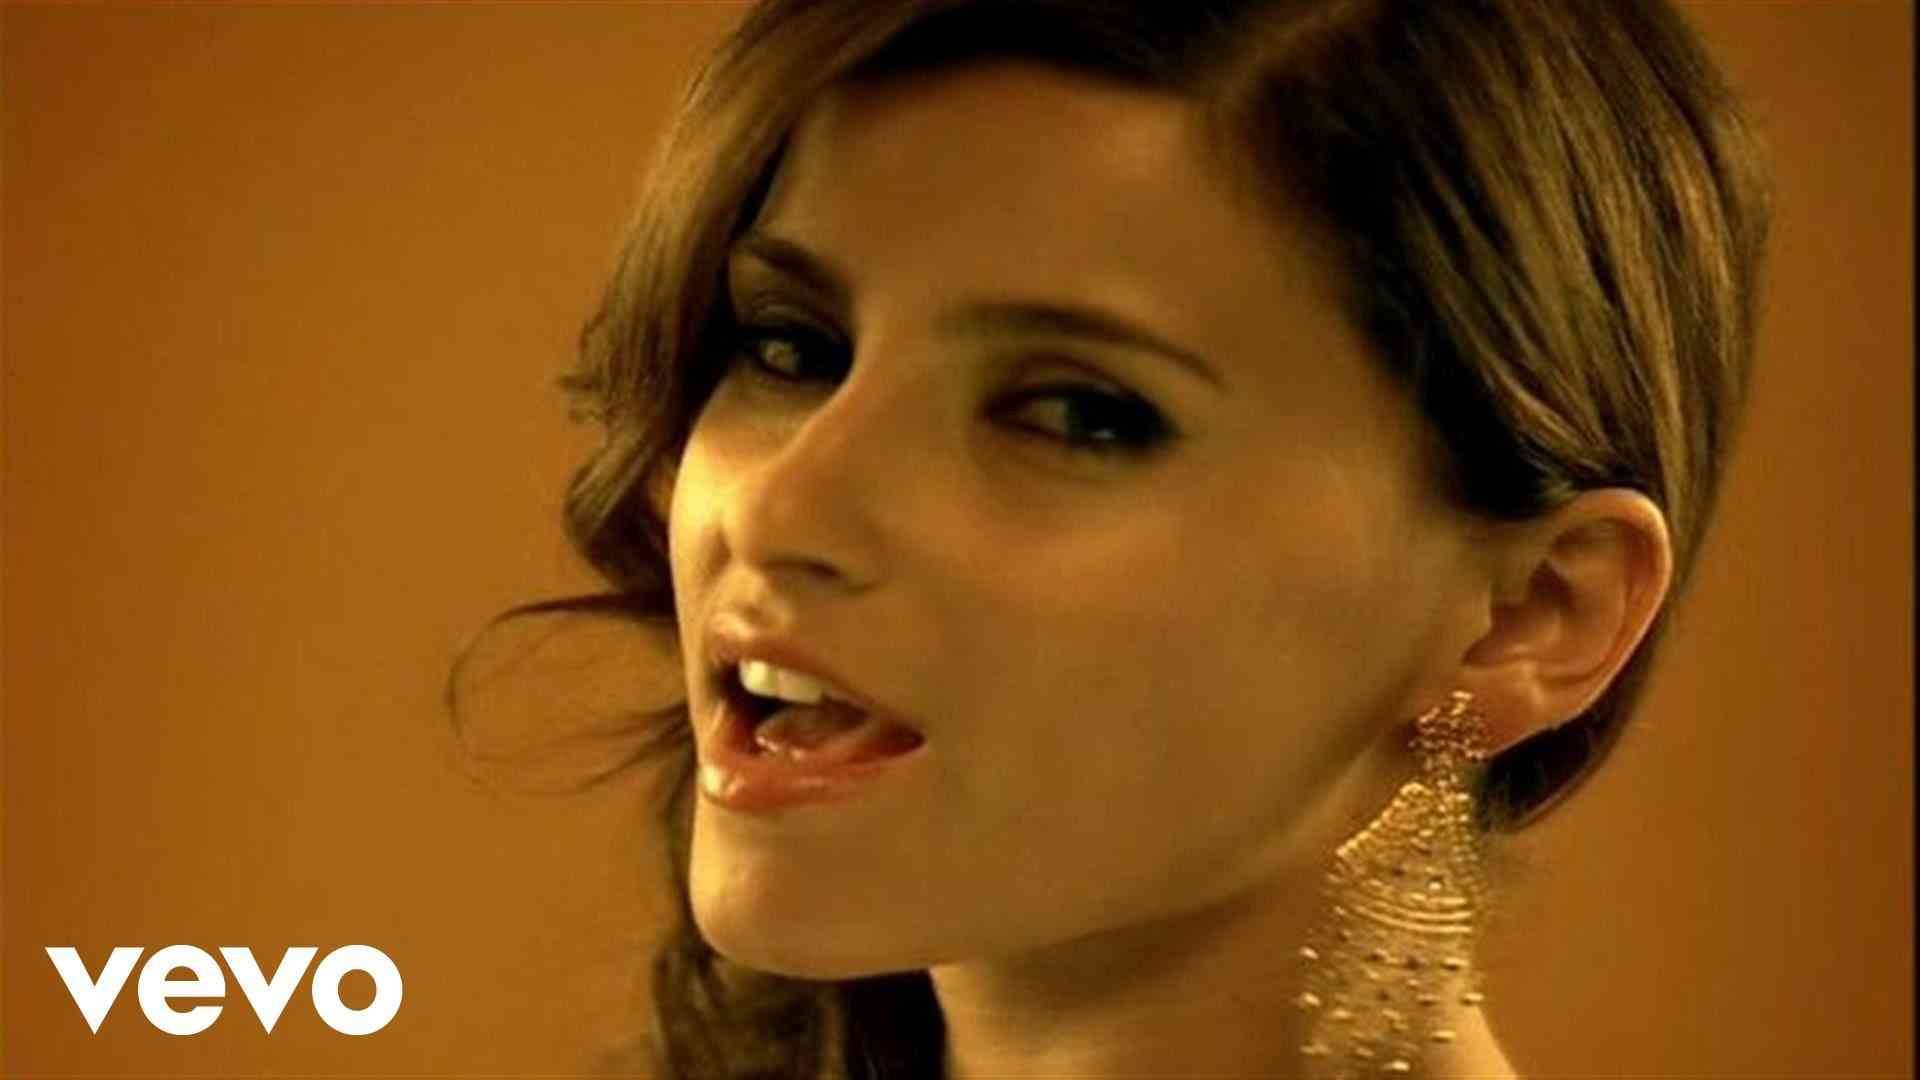 Nelly Furtado - Promiscuous ft. Timbaland - YouTube